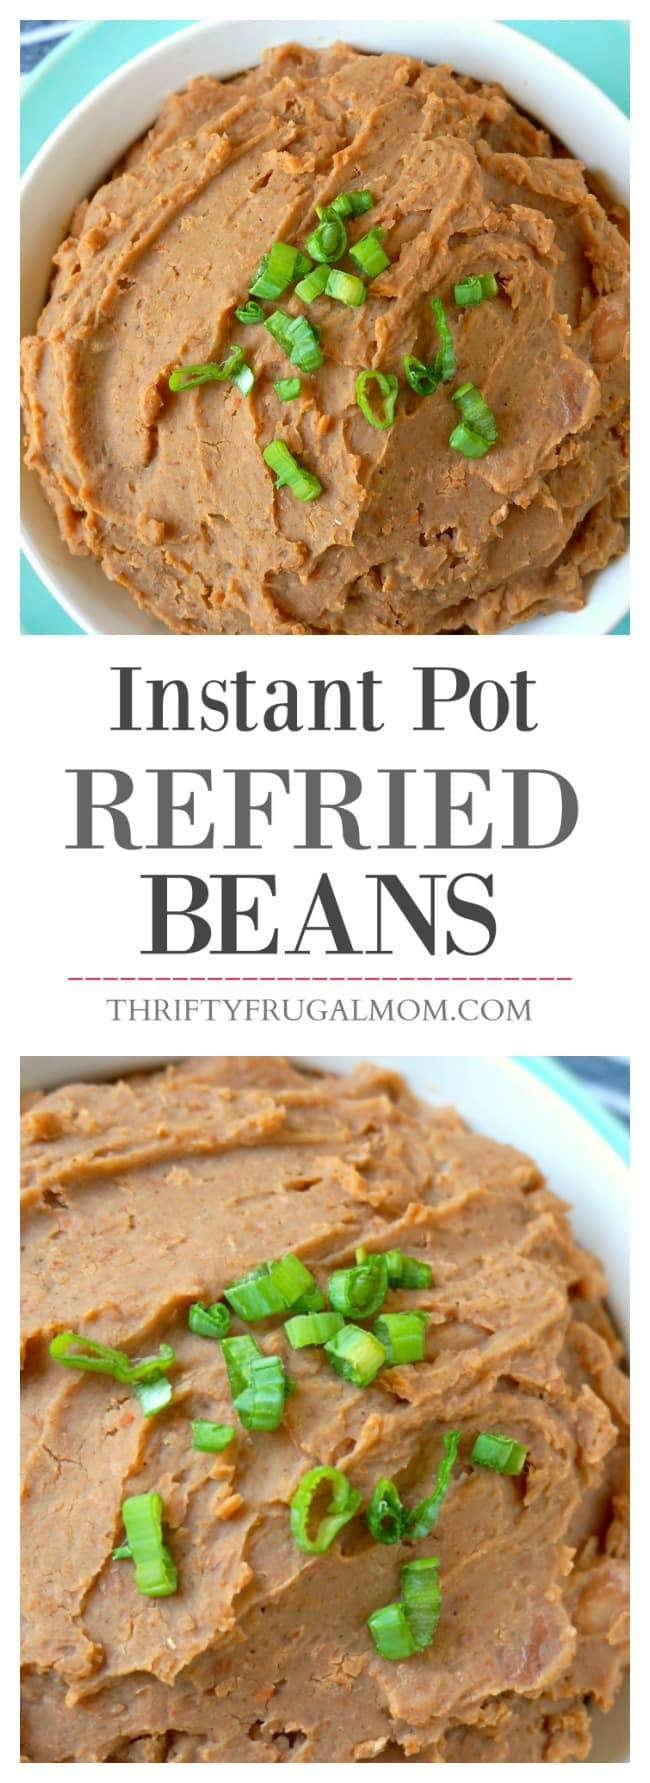 Easily make homemade refried beans in your Instant Pot! Takes just 30 minutes to cook. Includes Crockpot version too. Cheap, easy and delicious!